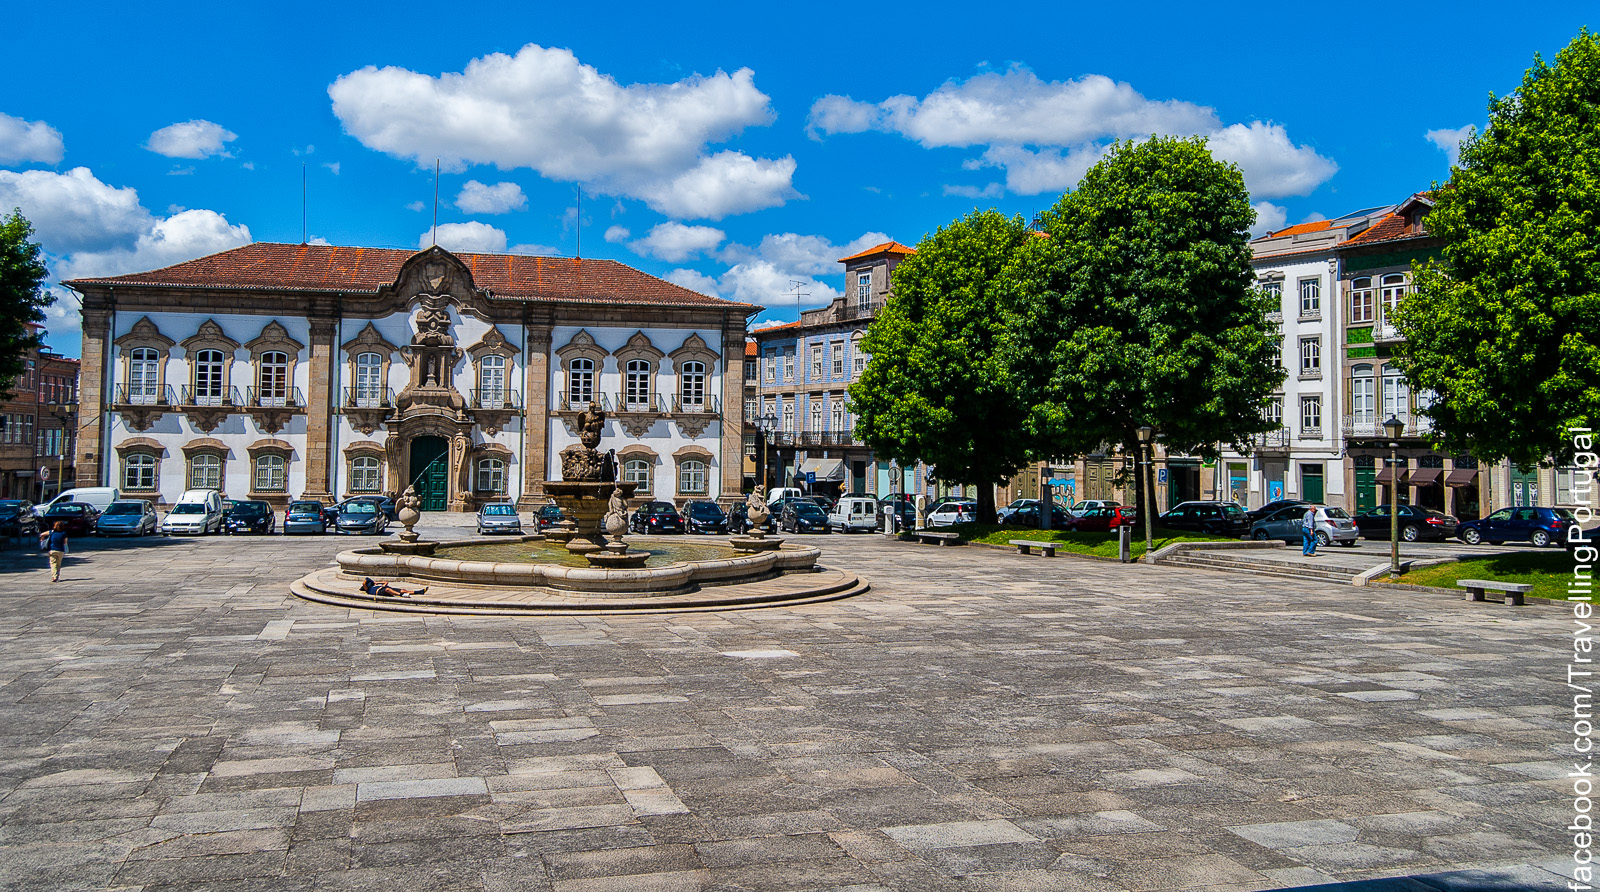 File:Praça do Municipio Braga.jpg